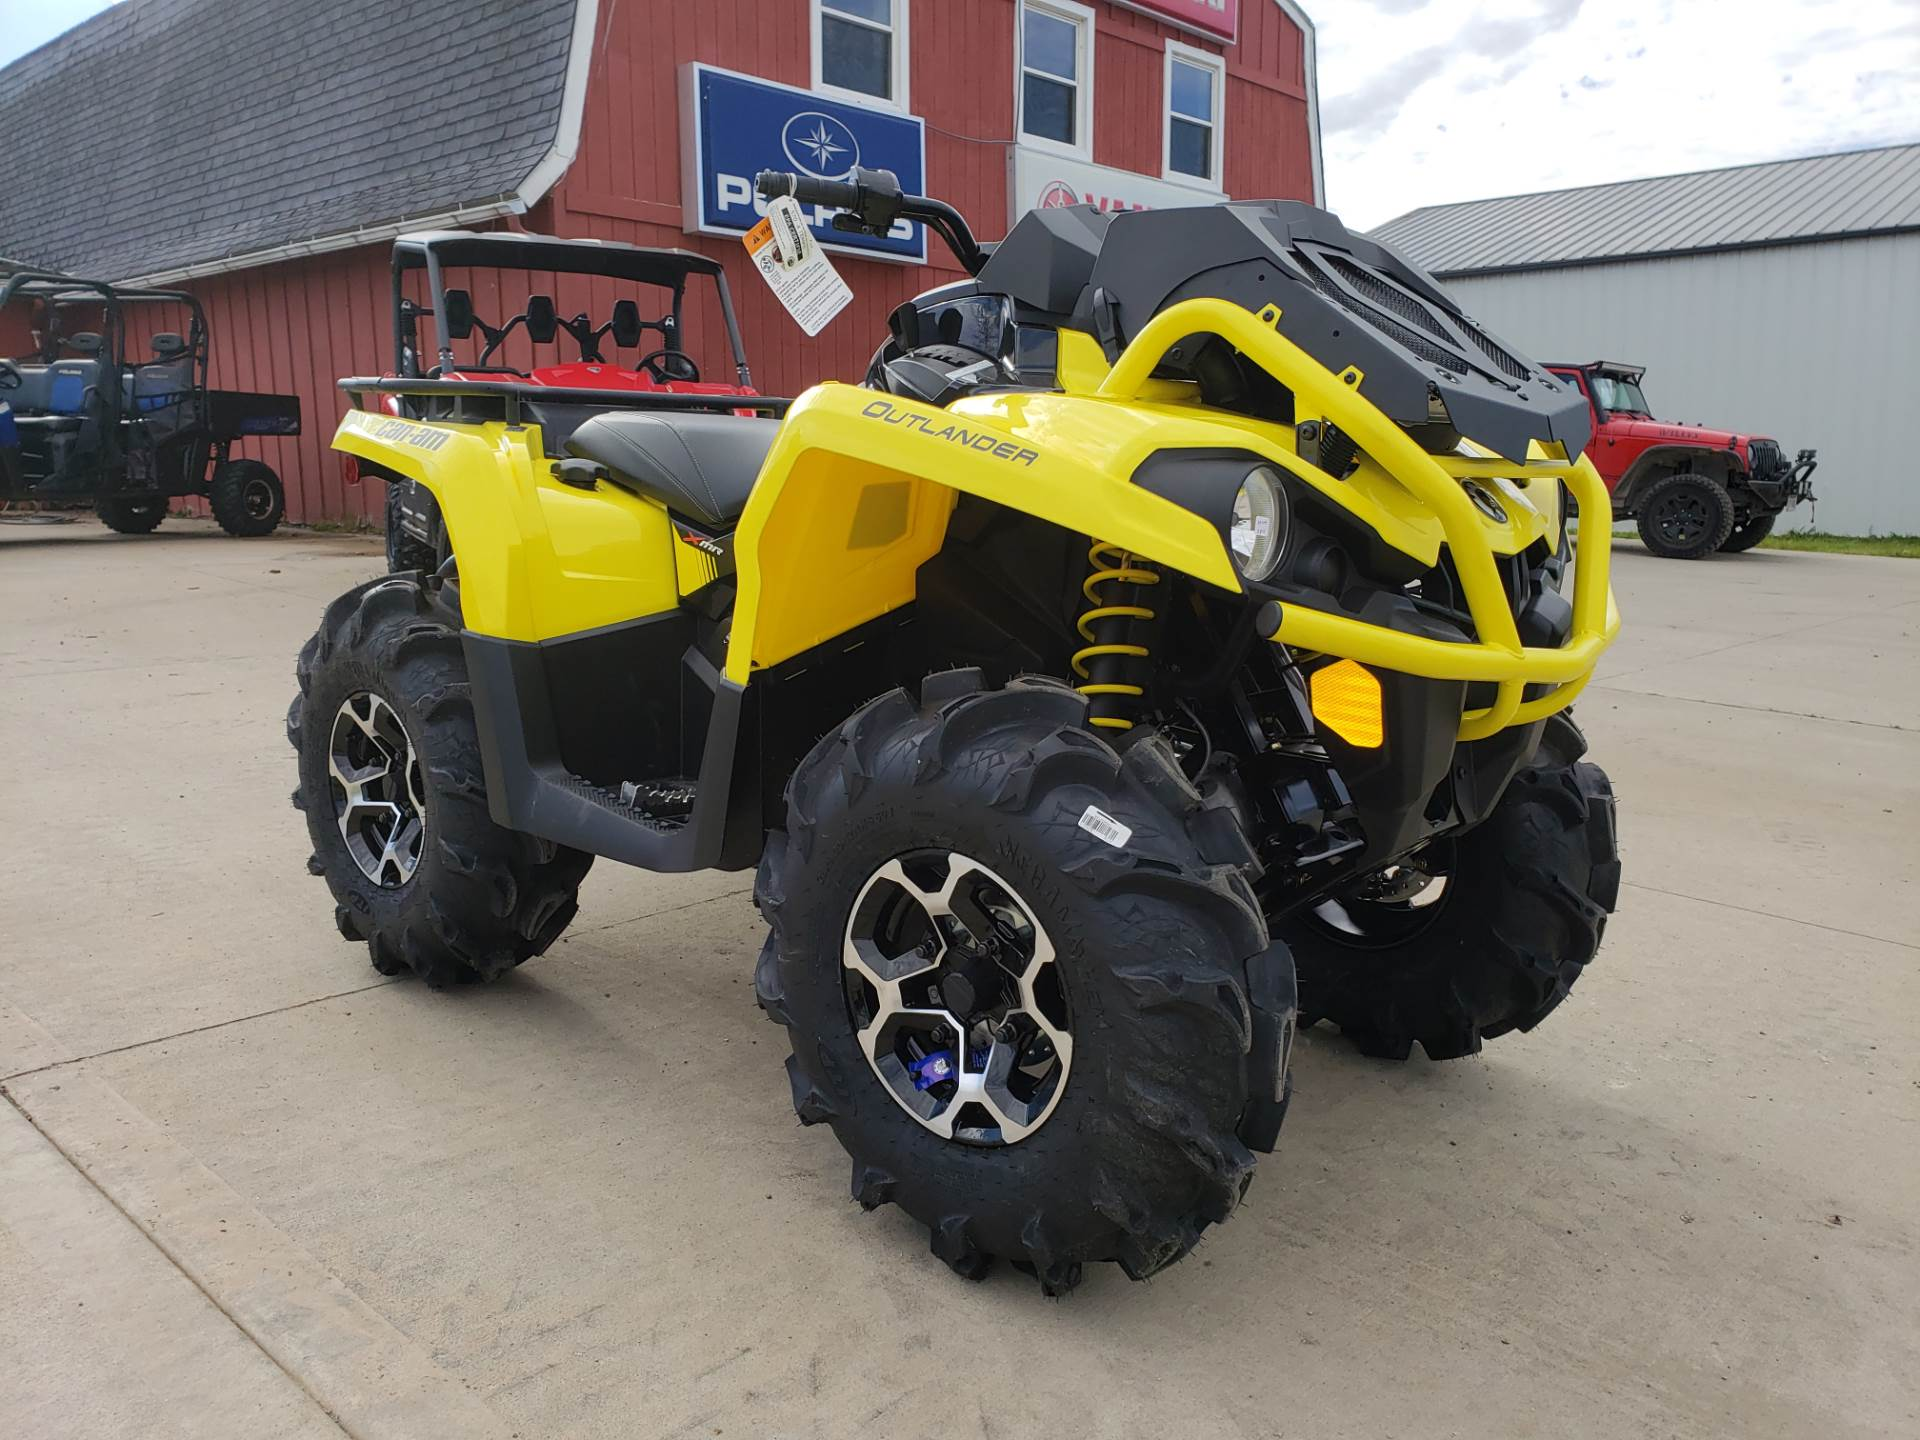 2019 Can-Am Outlander X mr 570 in Cambridge, Ohio - Photo 2